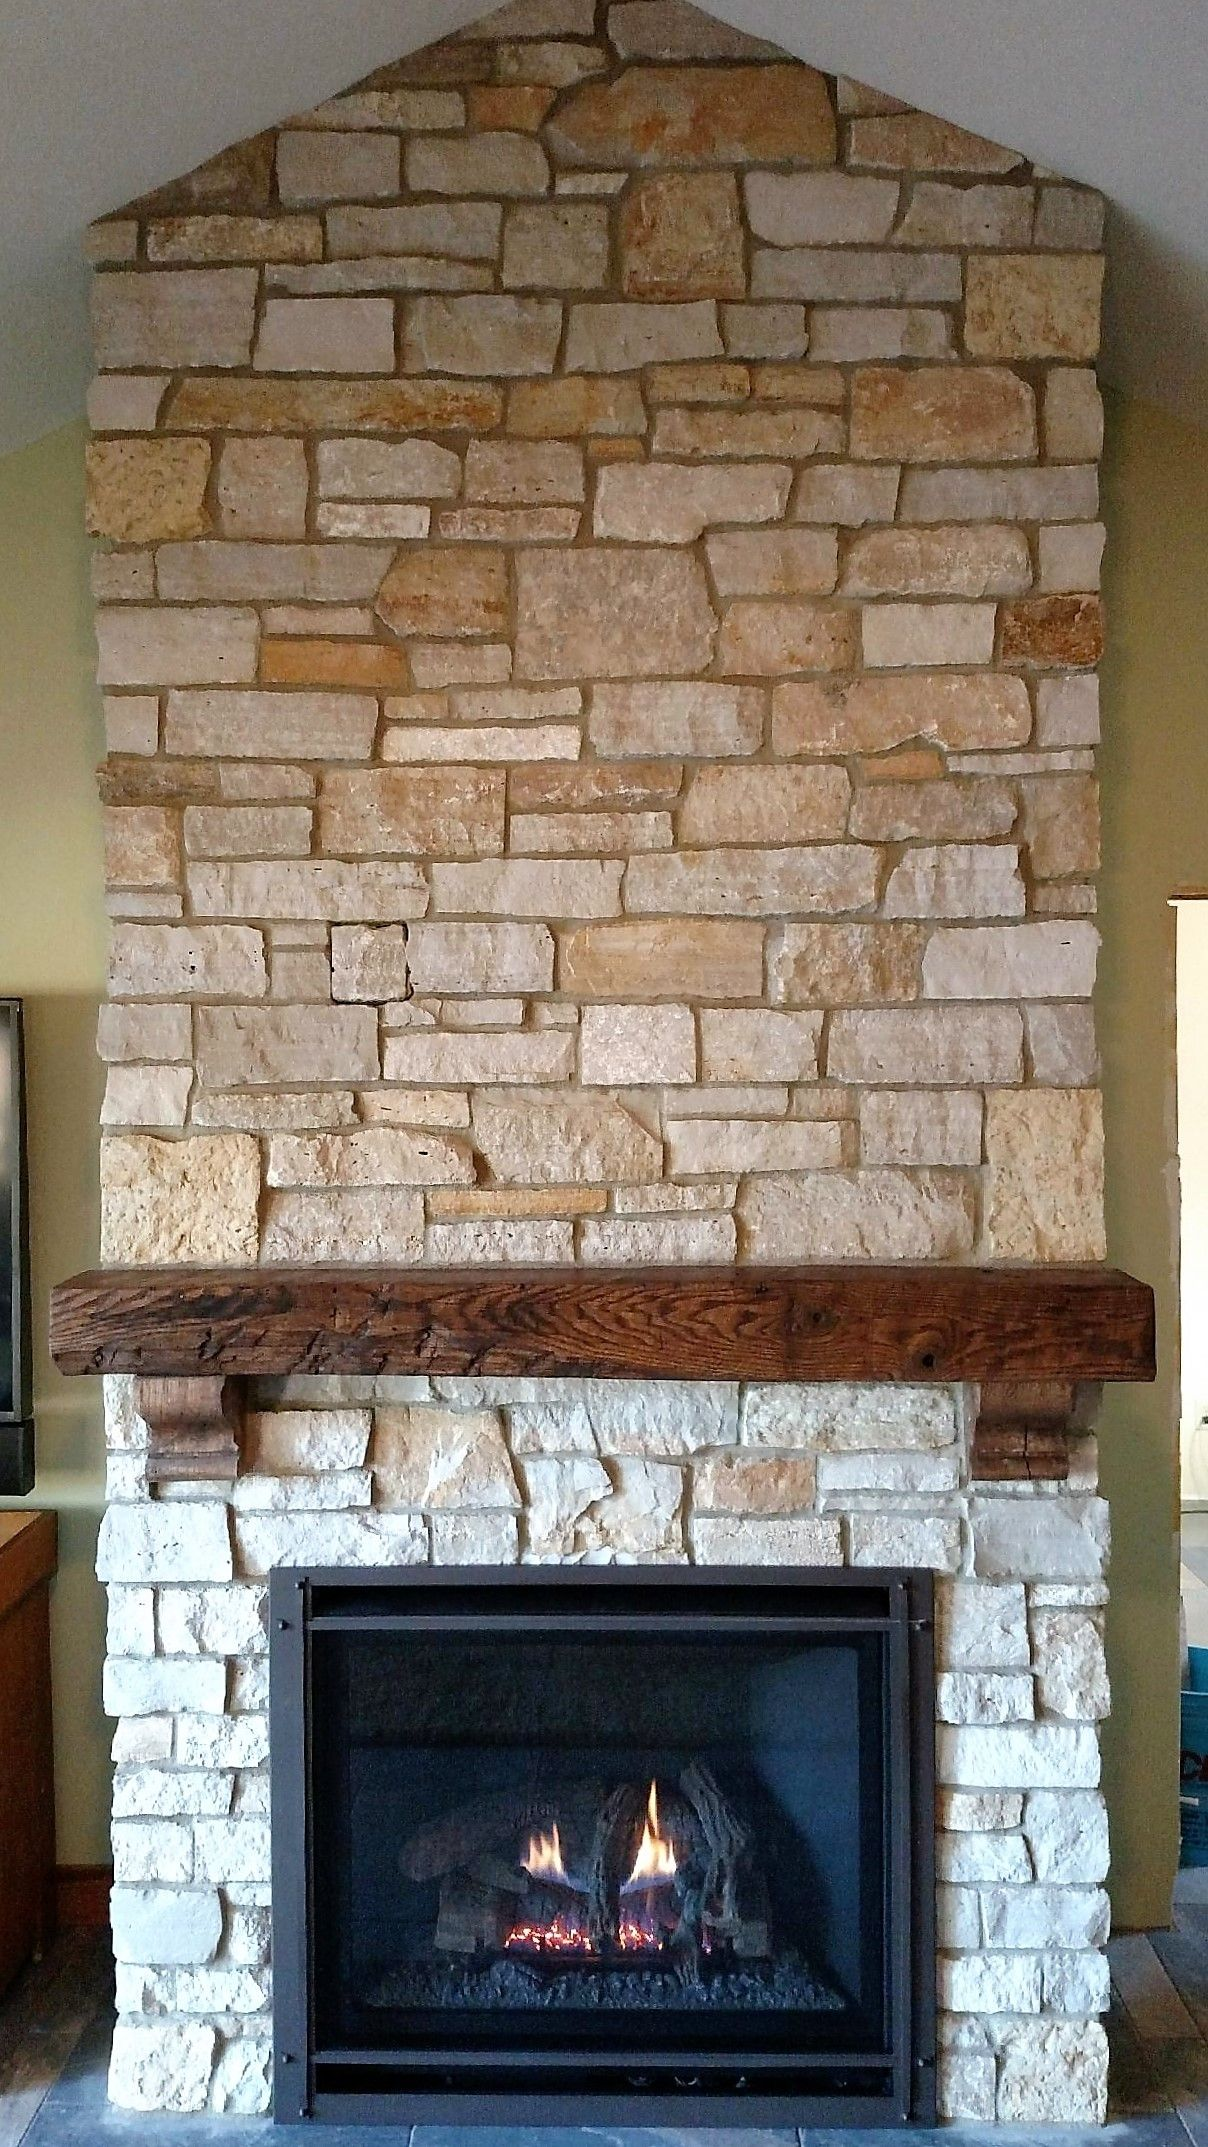 Great American Fireplace Installed This Kozy Heat Gas Fireplace